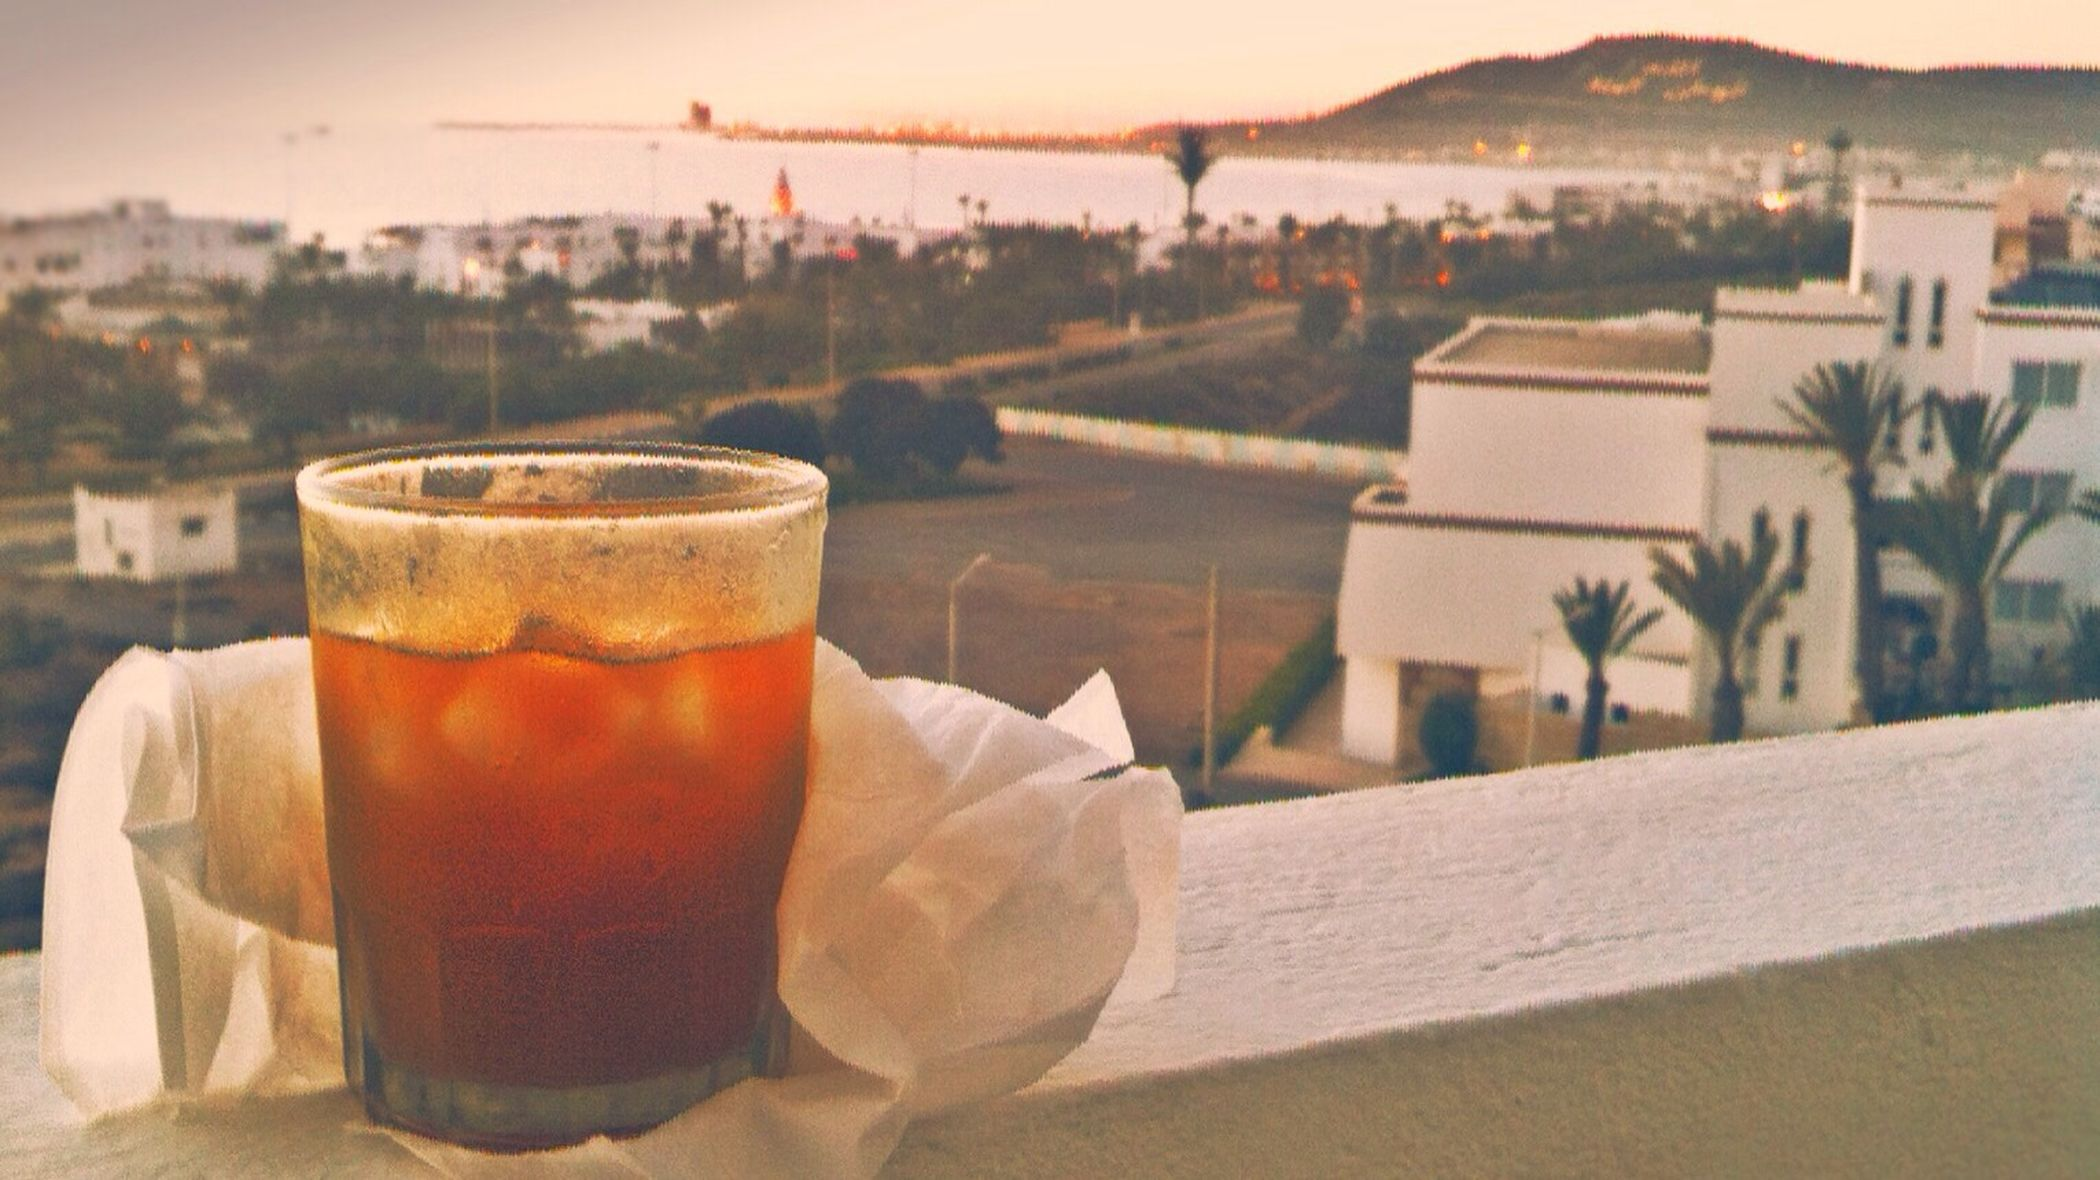 My drink in a beautiful place AGADIR